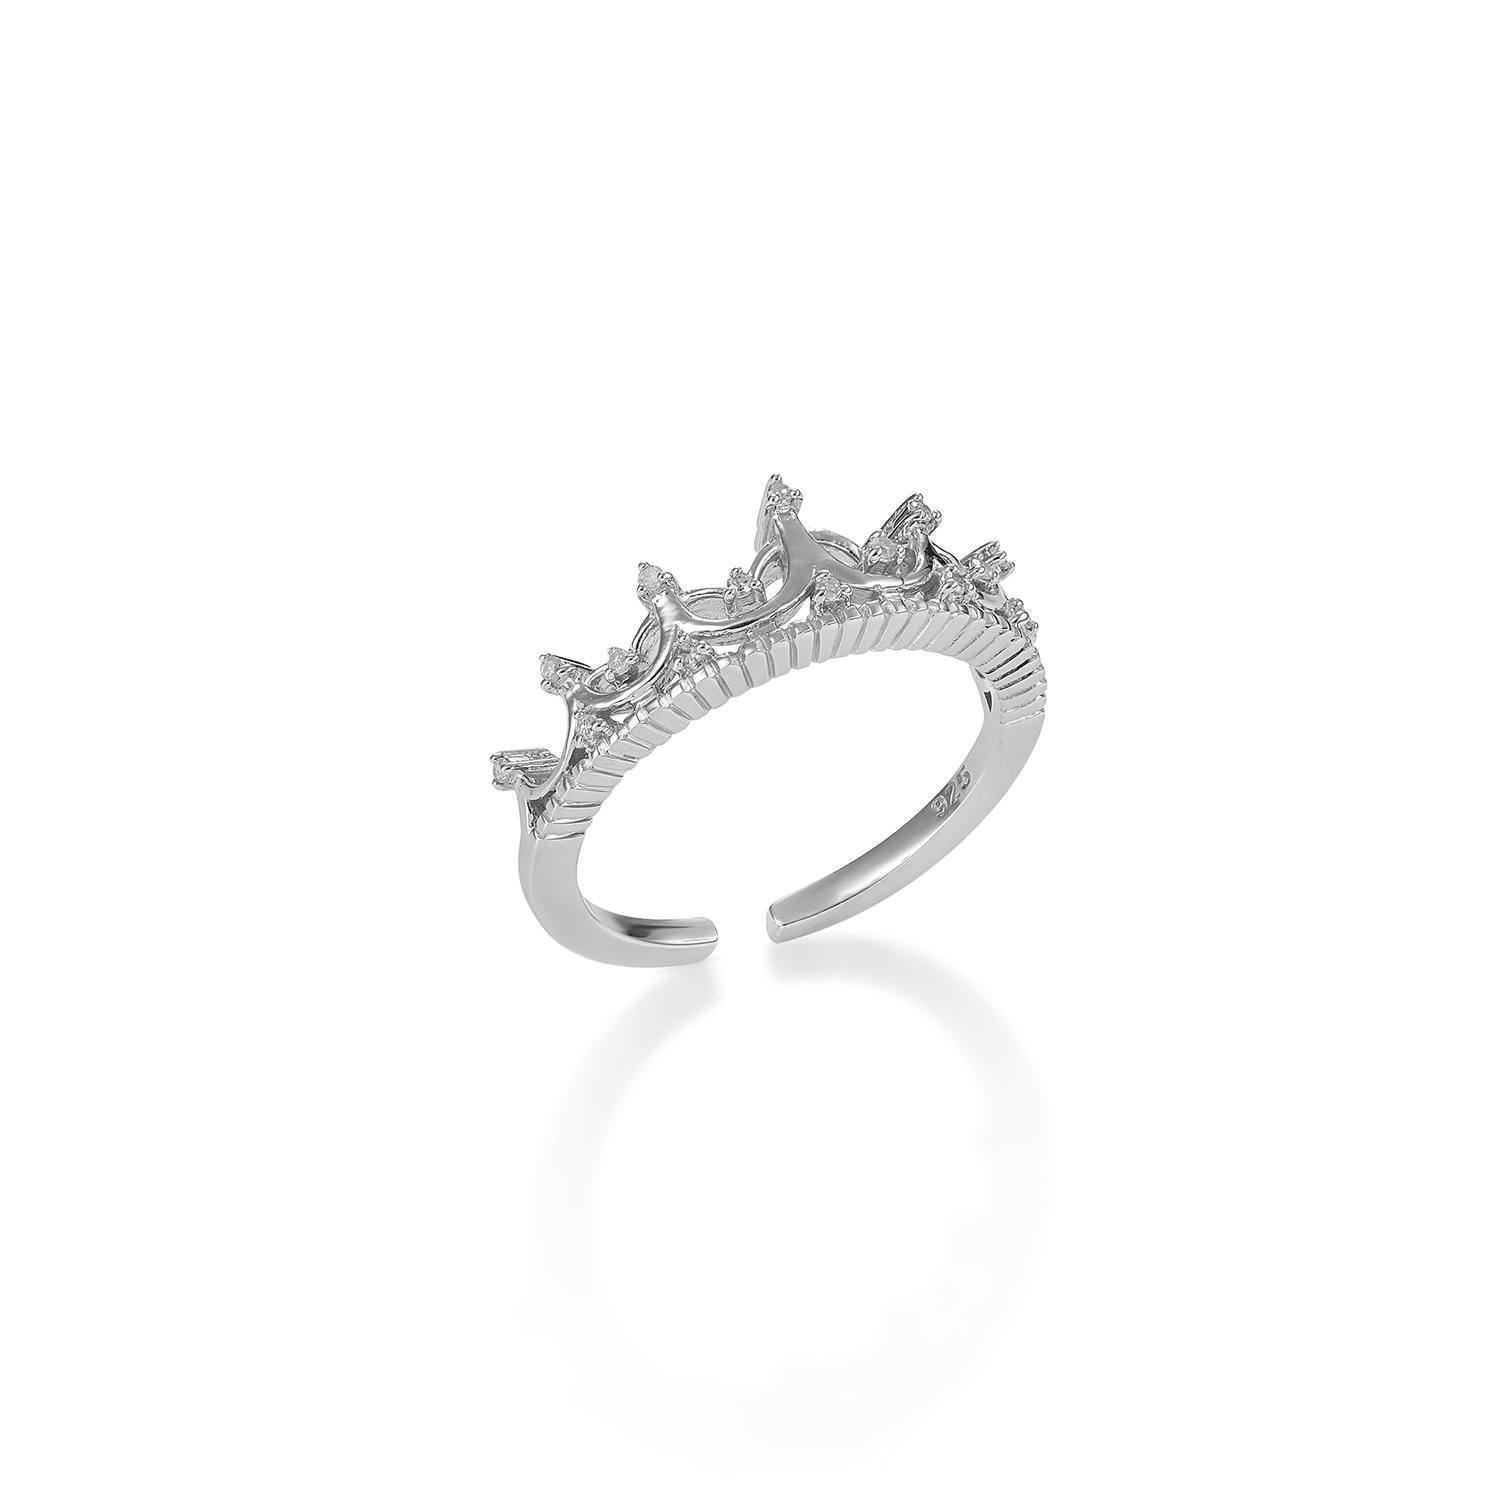 The Diamond Crown Ring